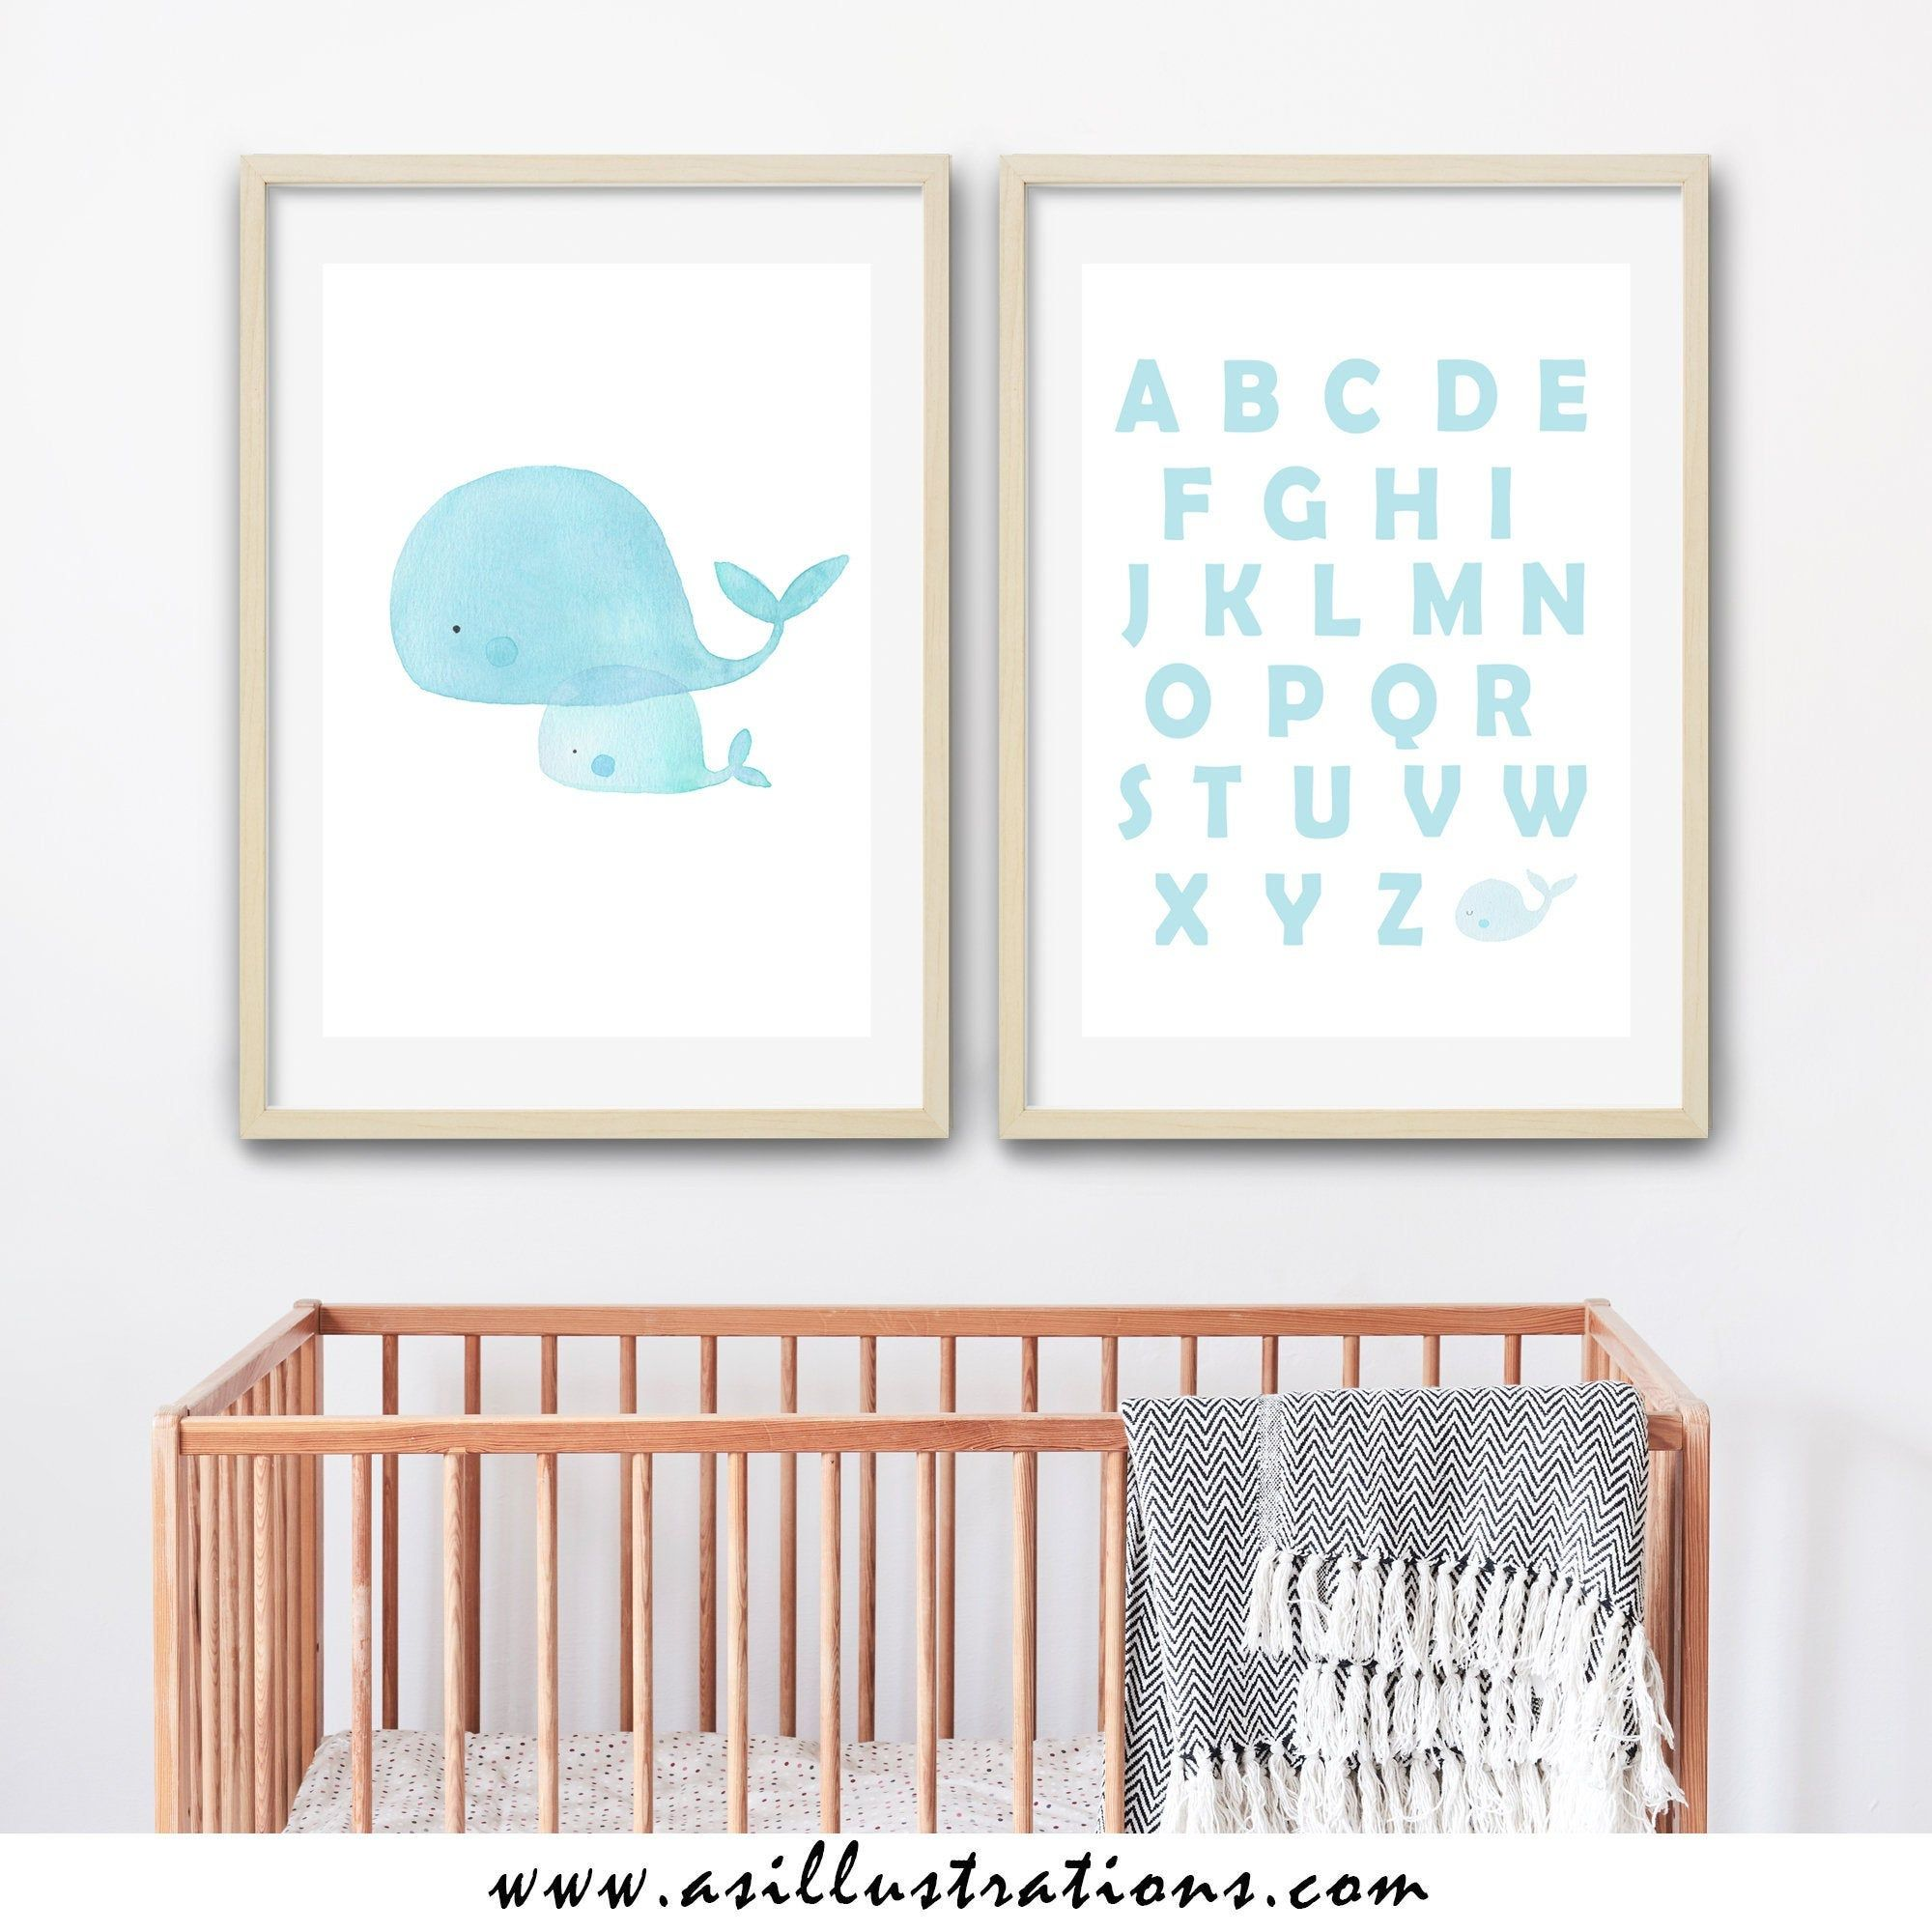 Blue Baby Whale Illustration Print Abc Boy Nursery Wall Art Baby Boy Nursery Whale Nursery Set Of T